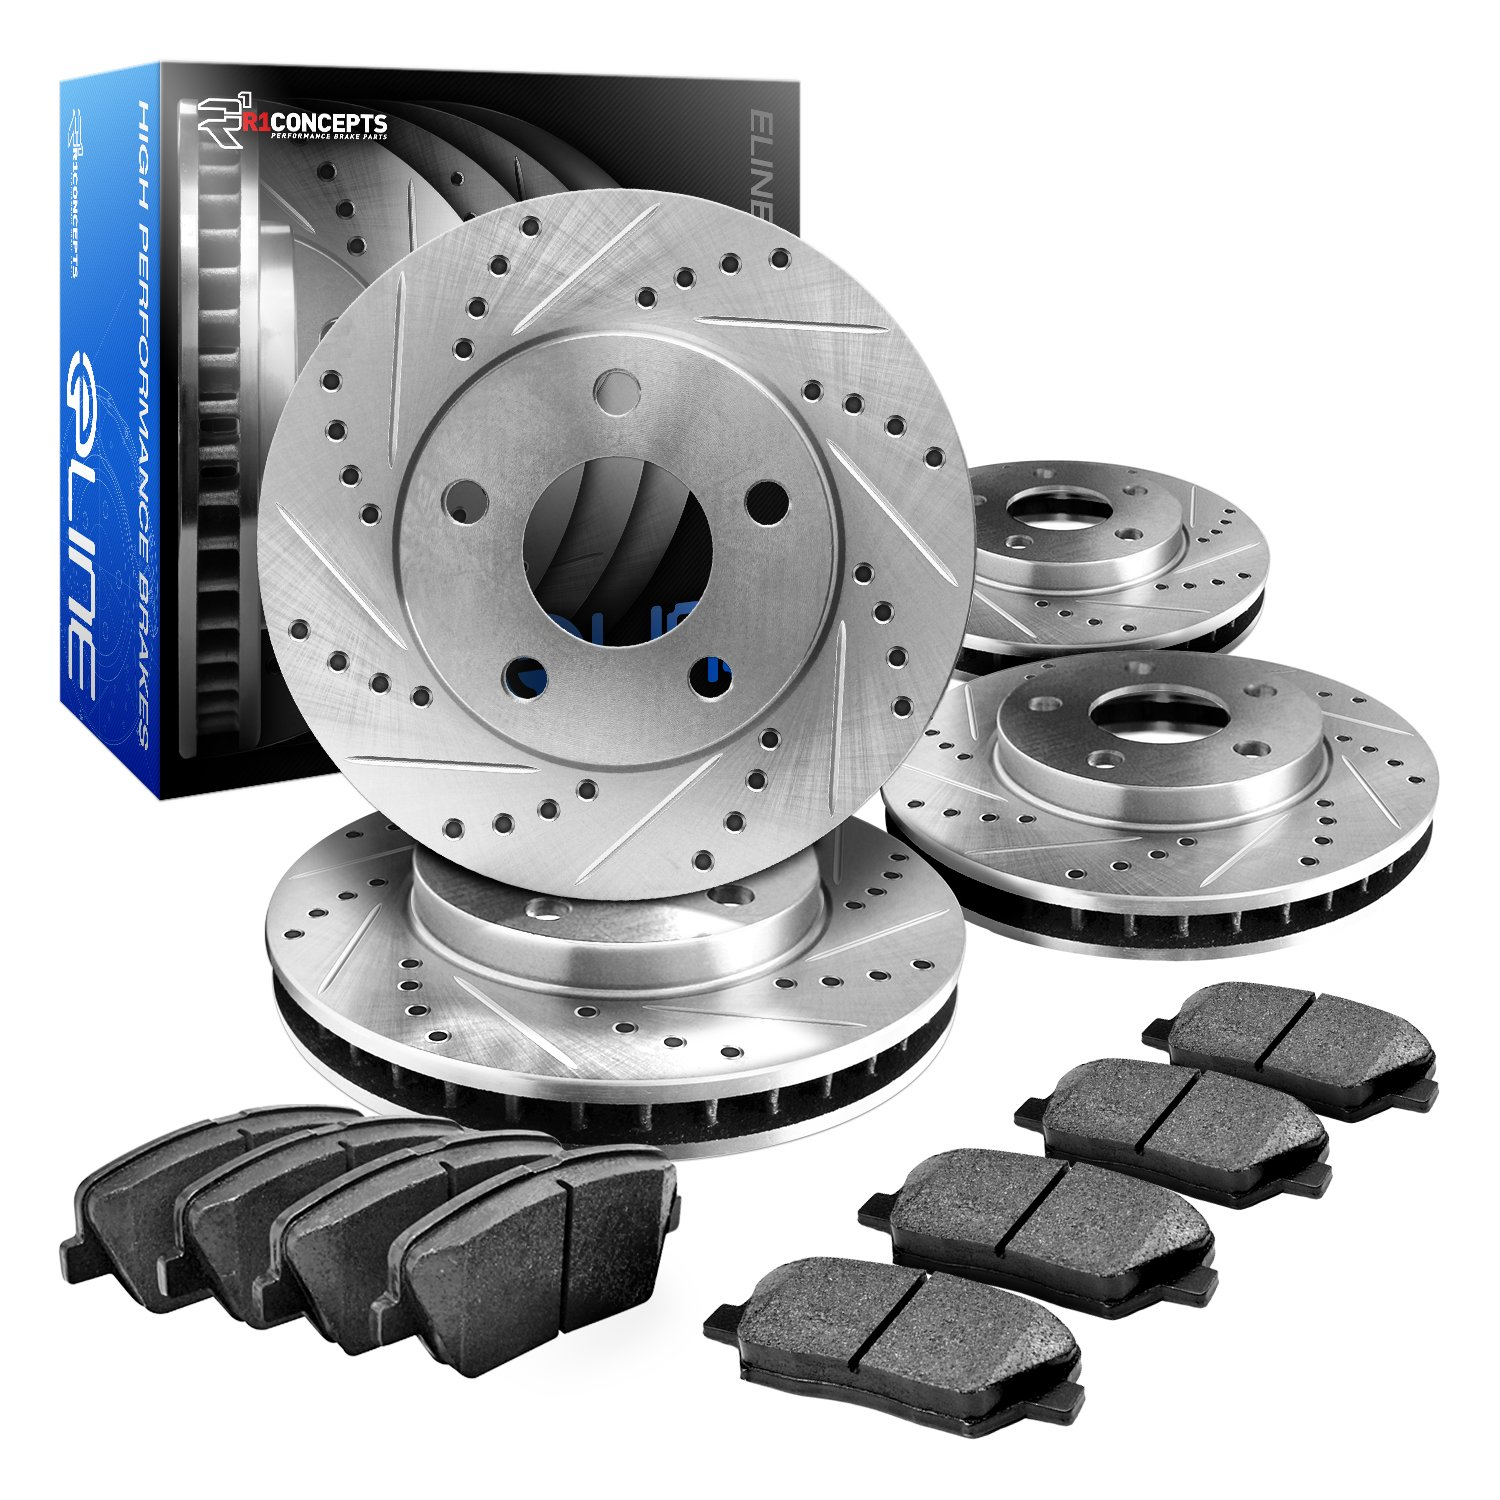 R1 Concepts CEDS10678 Eline Series Cross-Drilled Slotted Rotors And Ceramic Pads Kit - Front and Rear